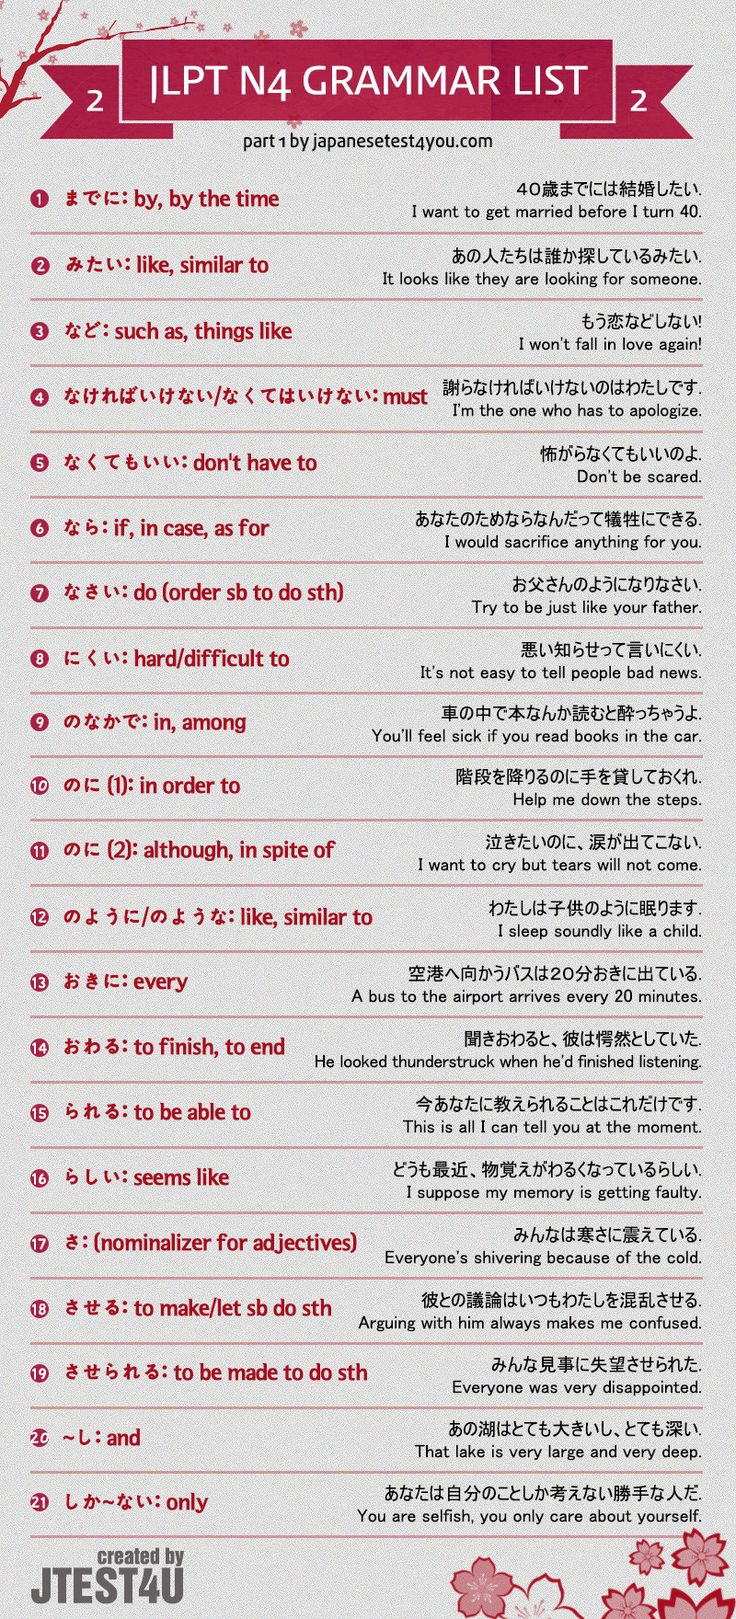 infographic jlpt n4 grammar list part 2. Black Bedroom Furniture Sets. Home Design Ideas